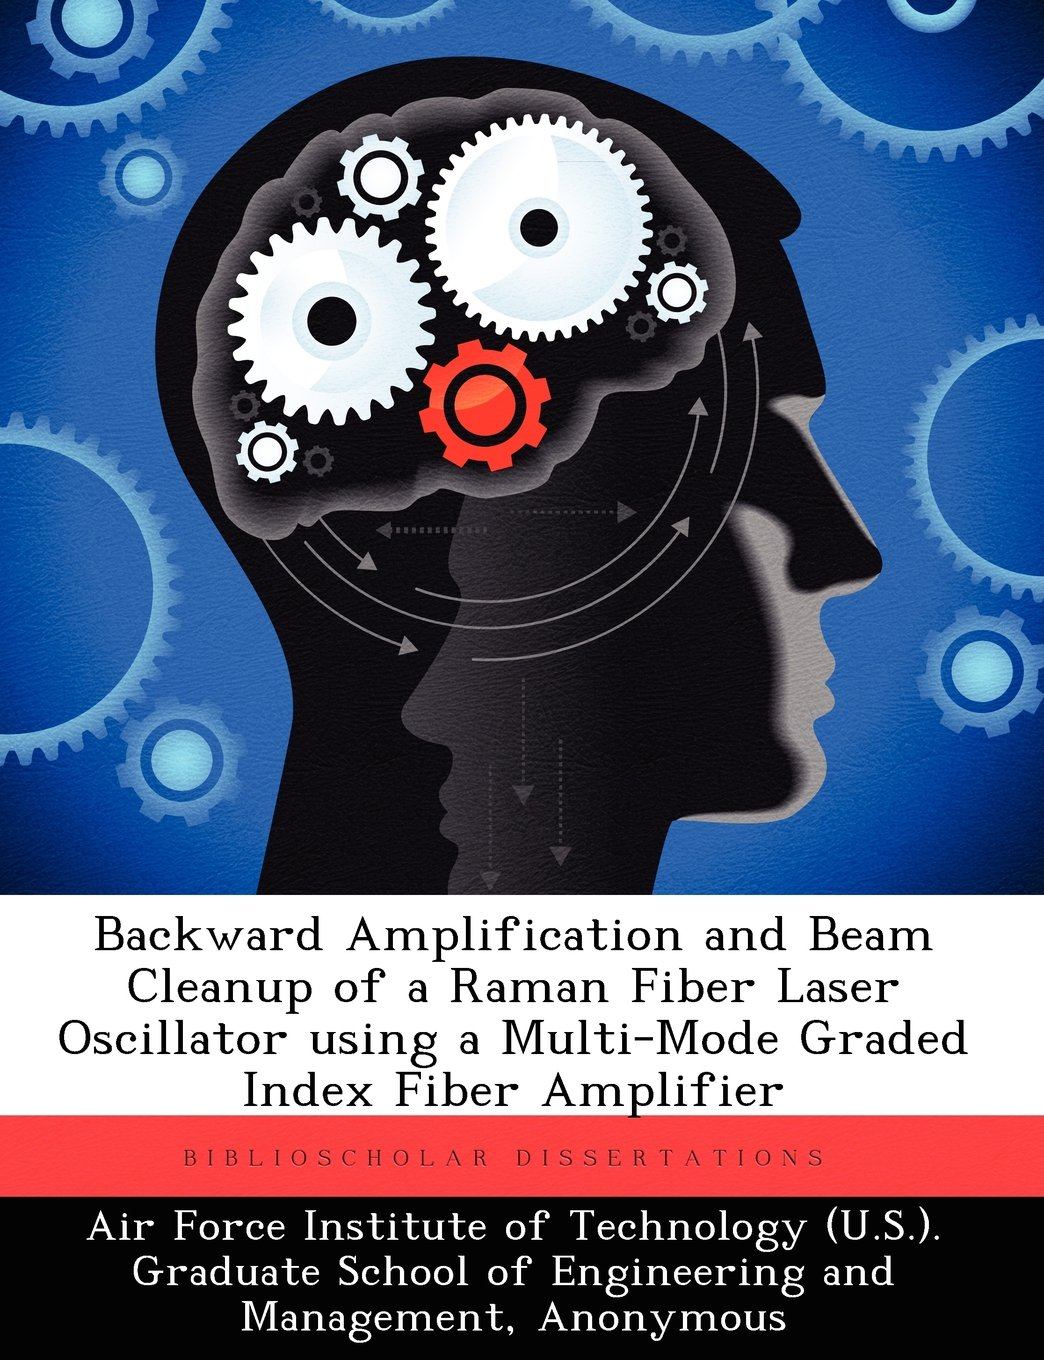 Download Backward Amplification and Beam Cleanup of a Raman Fiber Laser Oscillator using a Multi-Mode Graded Index Fiber Amplifier pdf